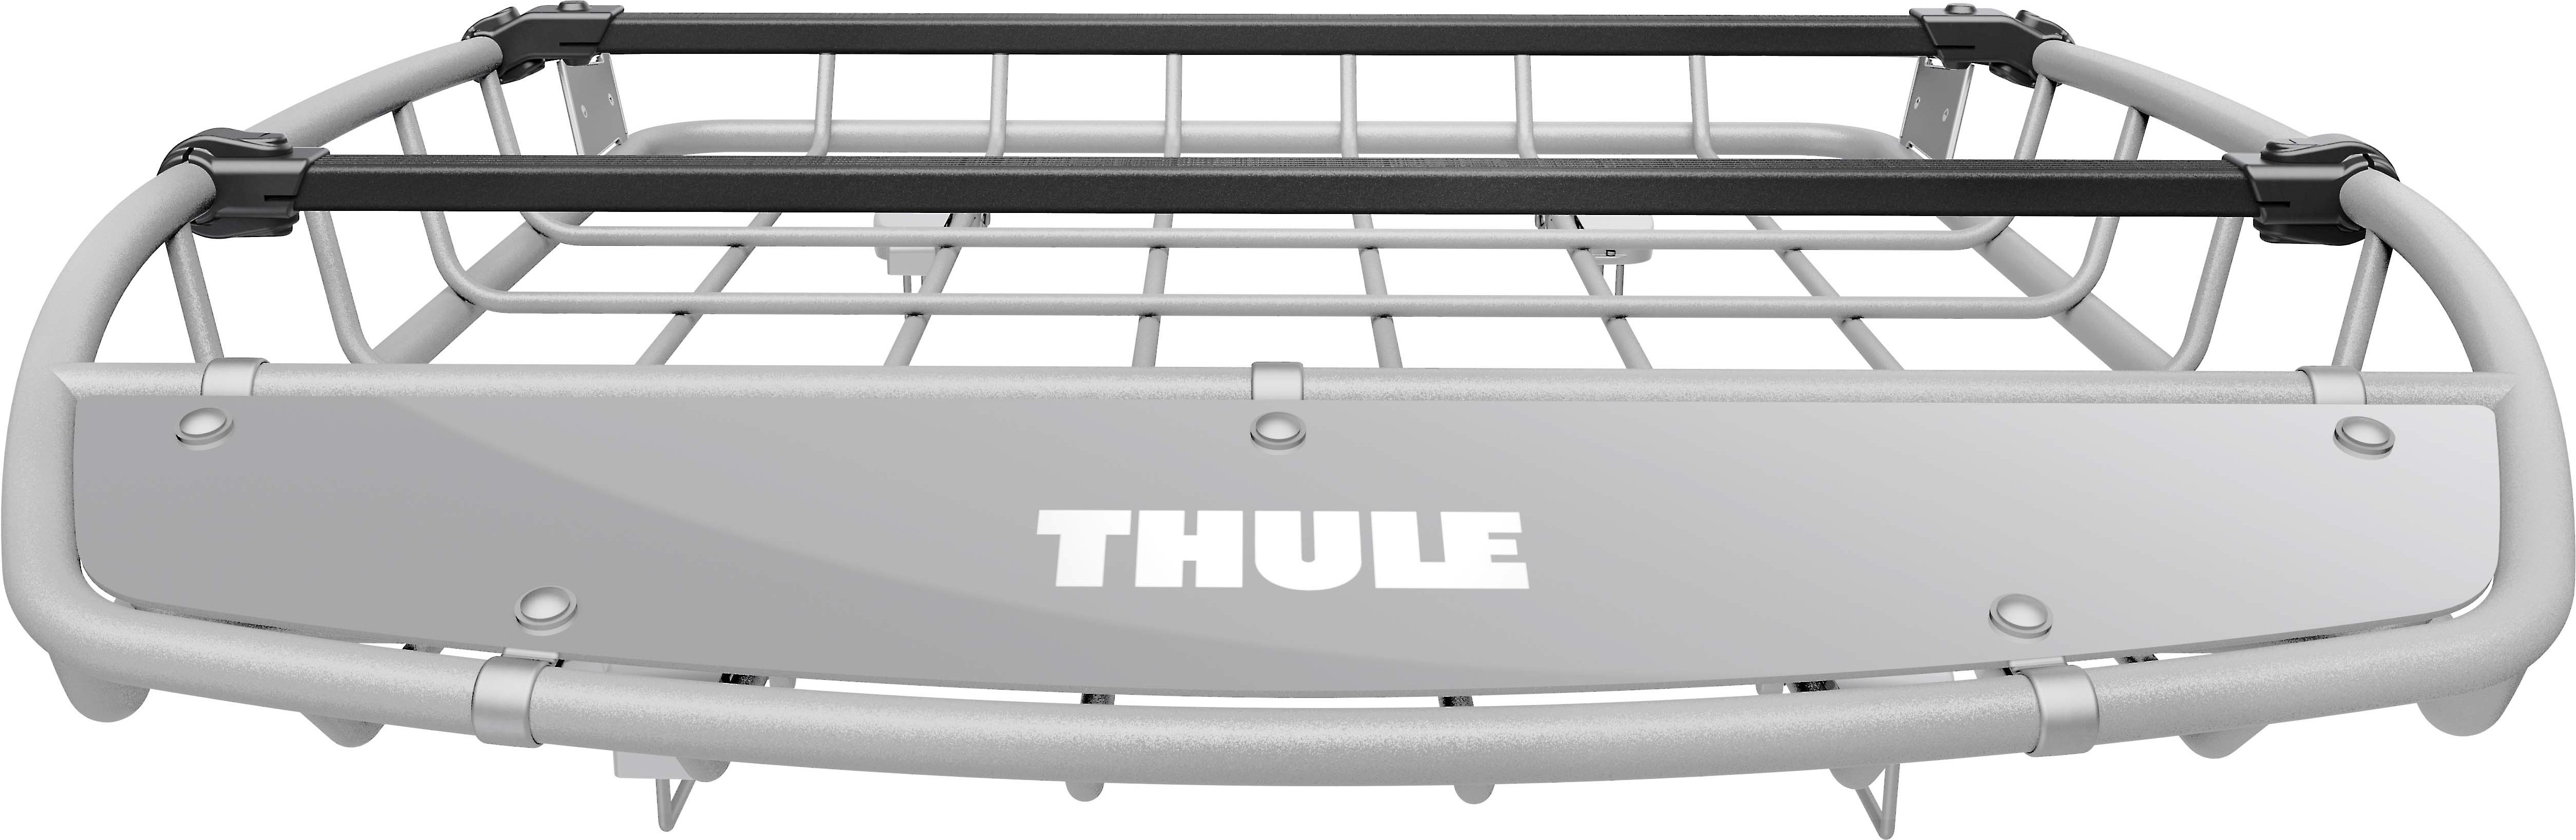 thule 8592 crossbars for a thule canyon